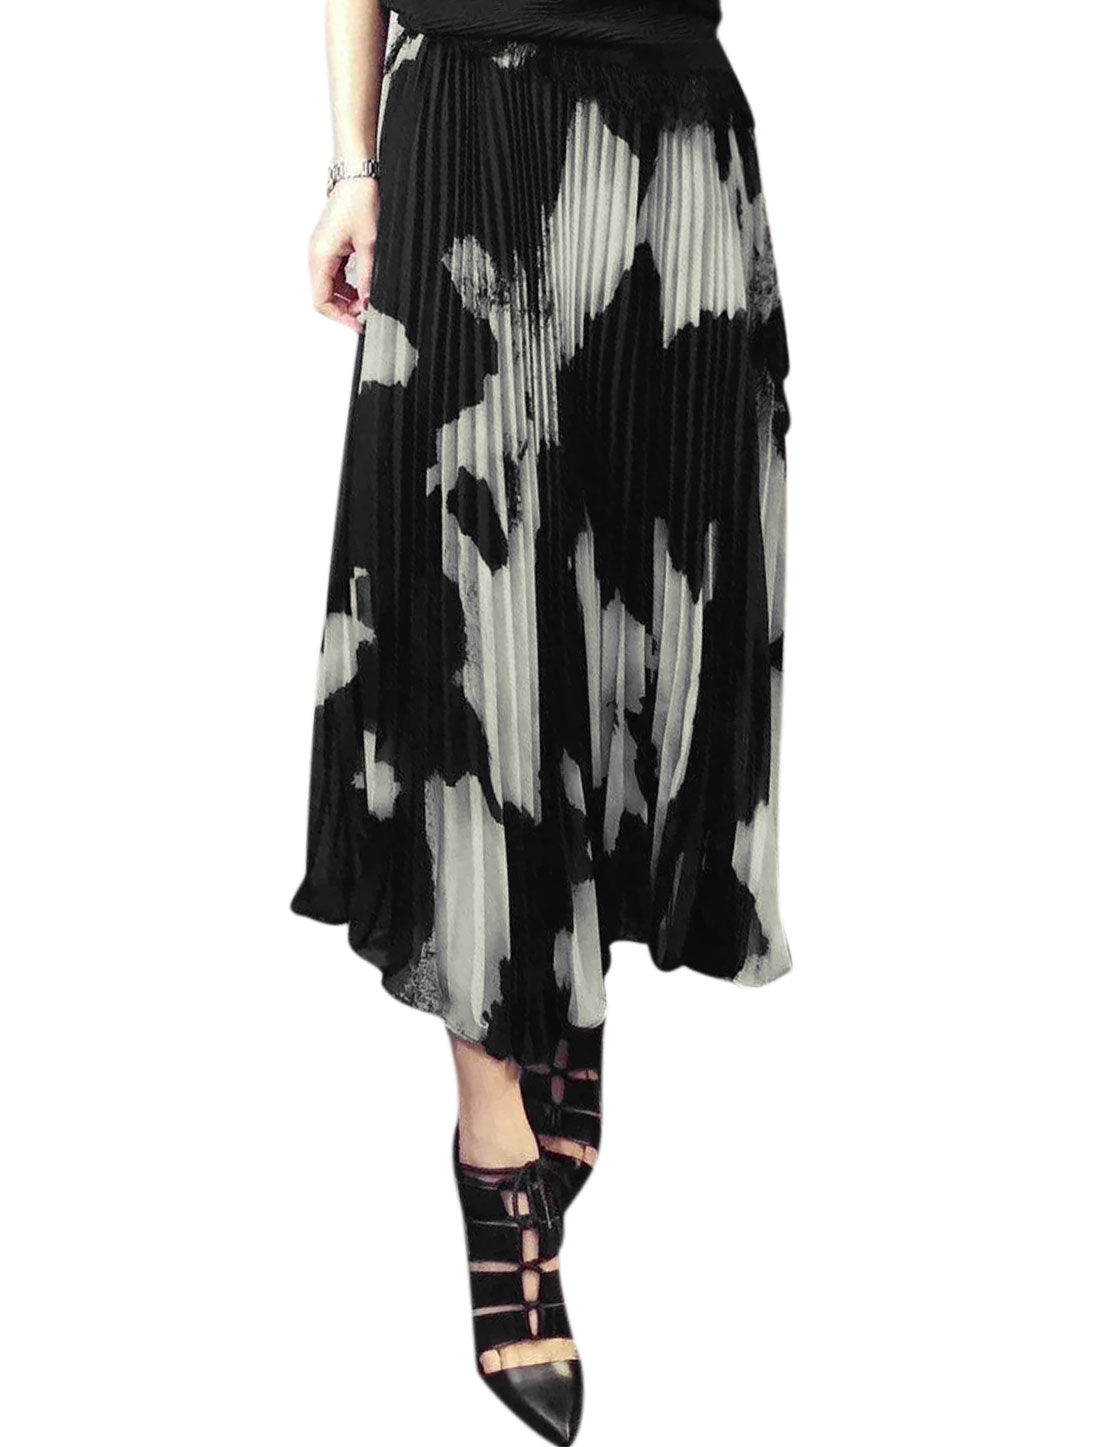 Woman Elastic Waist Novelty Prints Partially Lined Chiffon Pleated Skirt Black White S